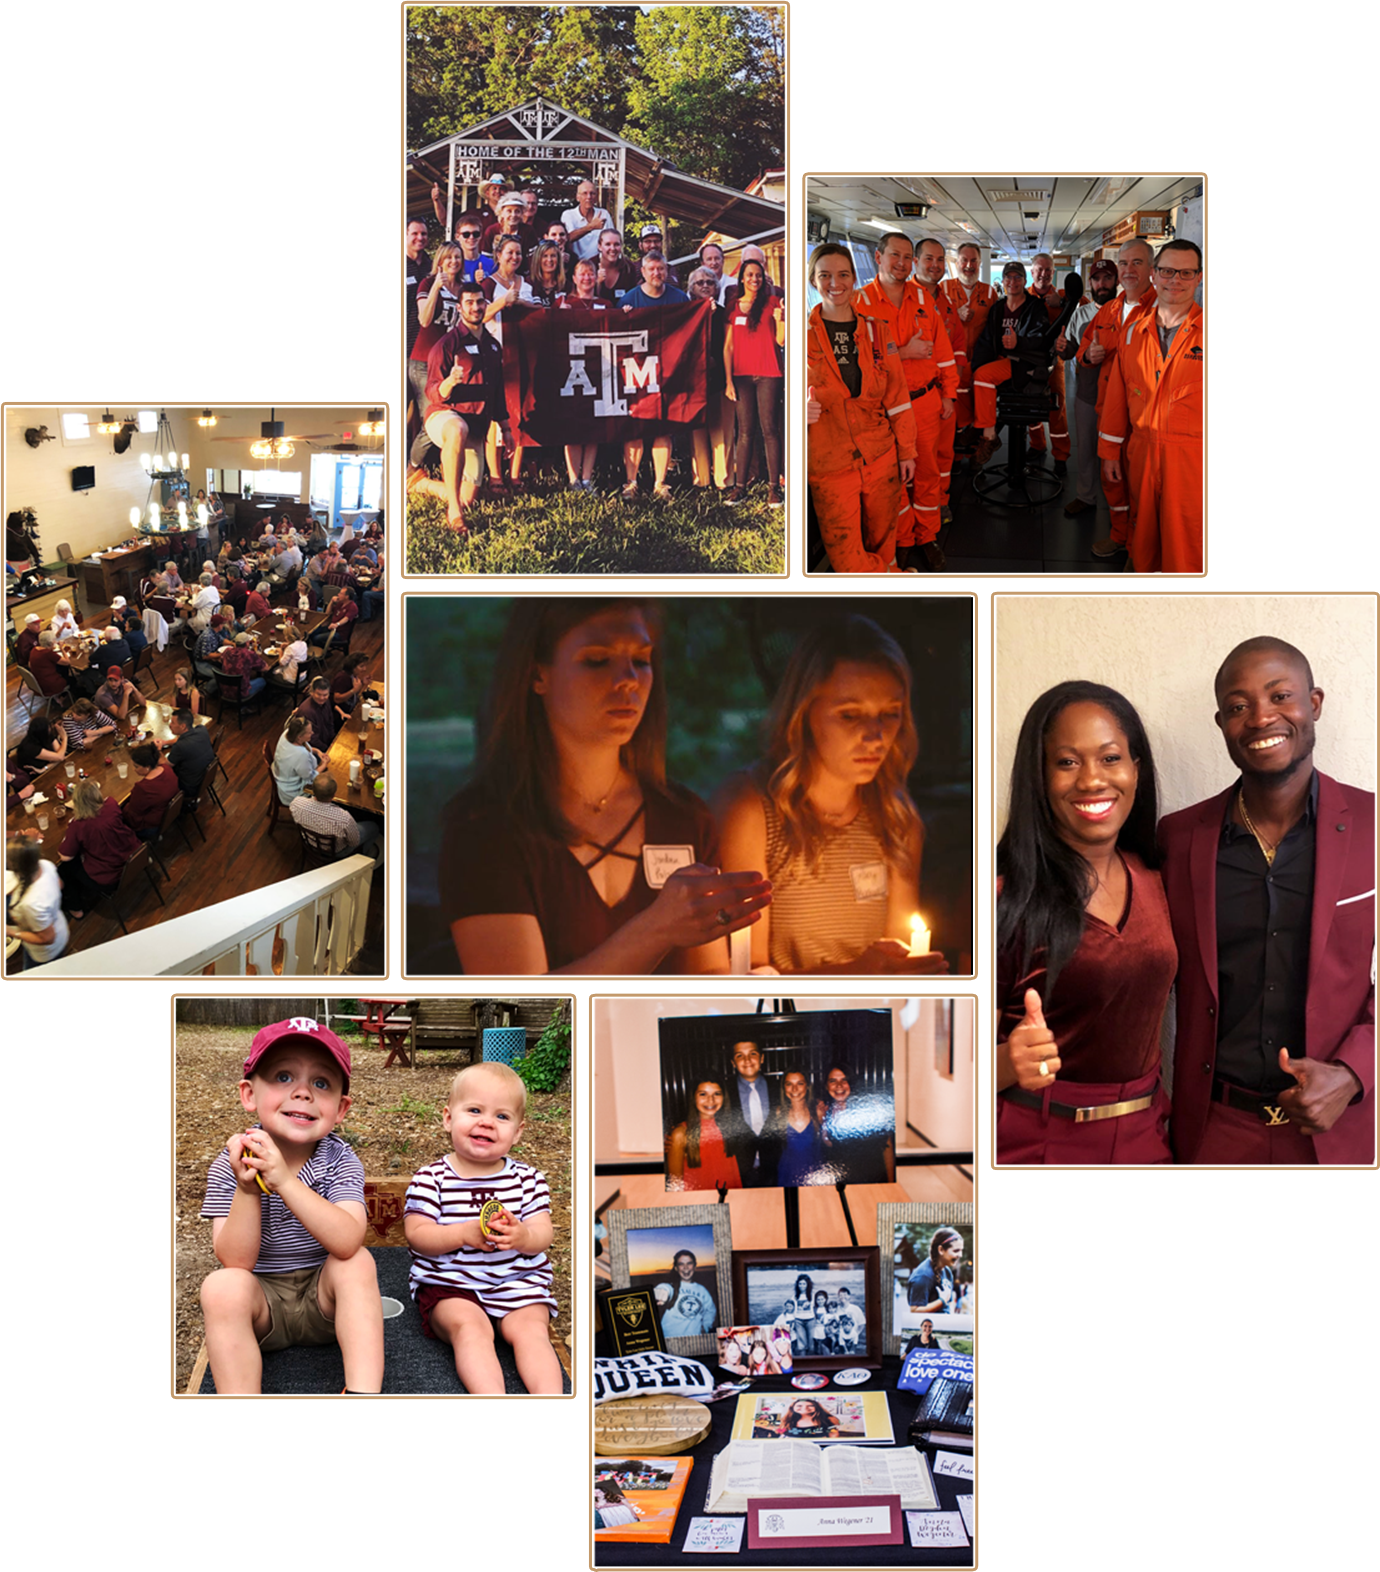 A collage of photos showing scenes from Muster celebrations around the world.